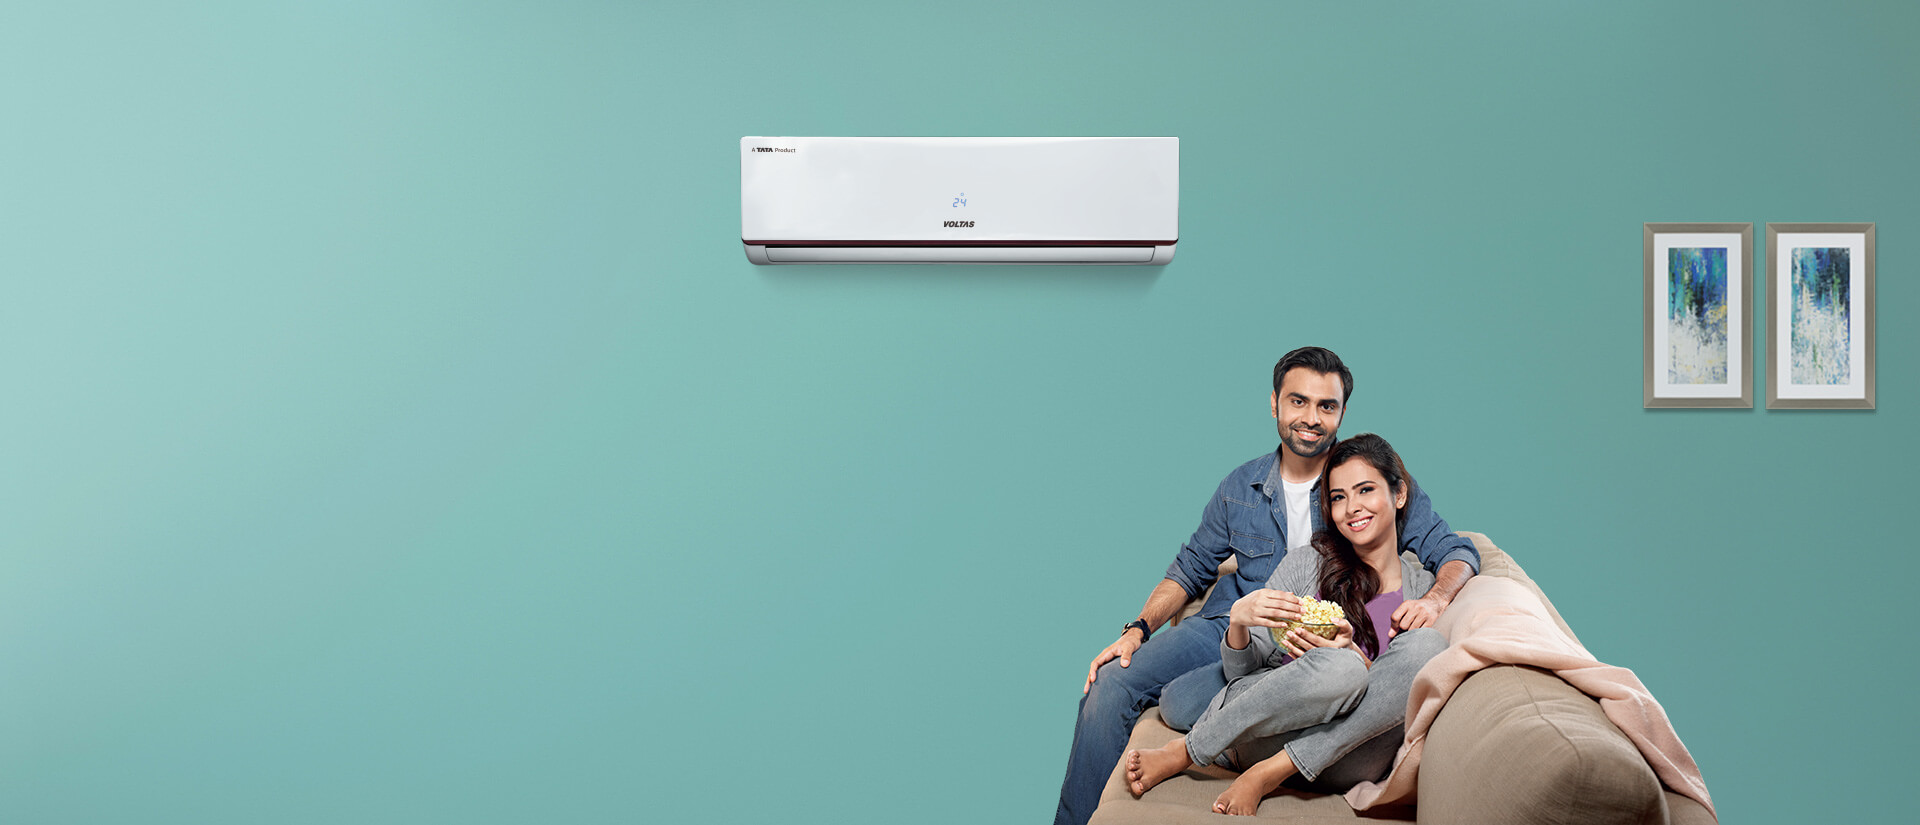 Voltas Ac Best Ac In India Air Coolers Commercial